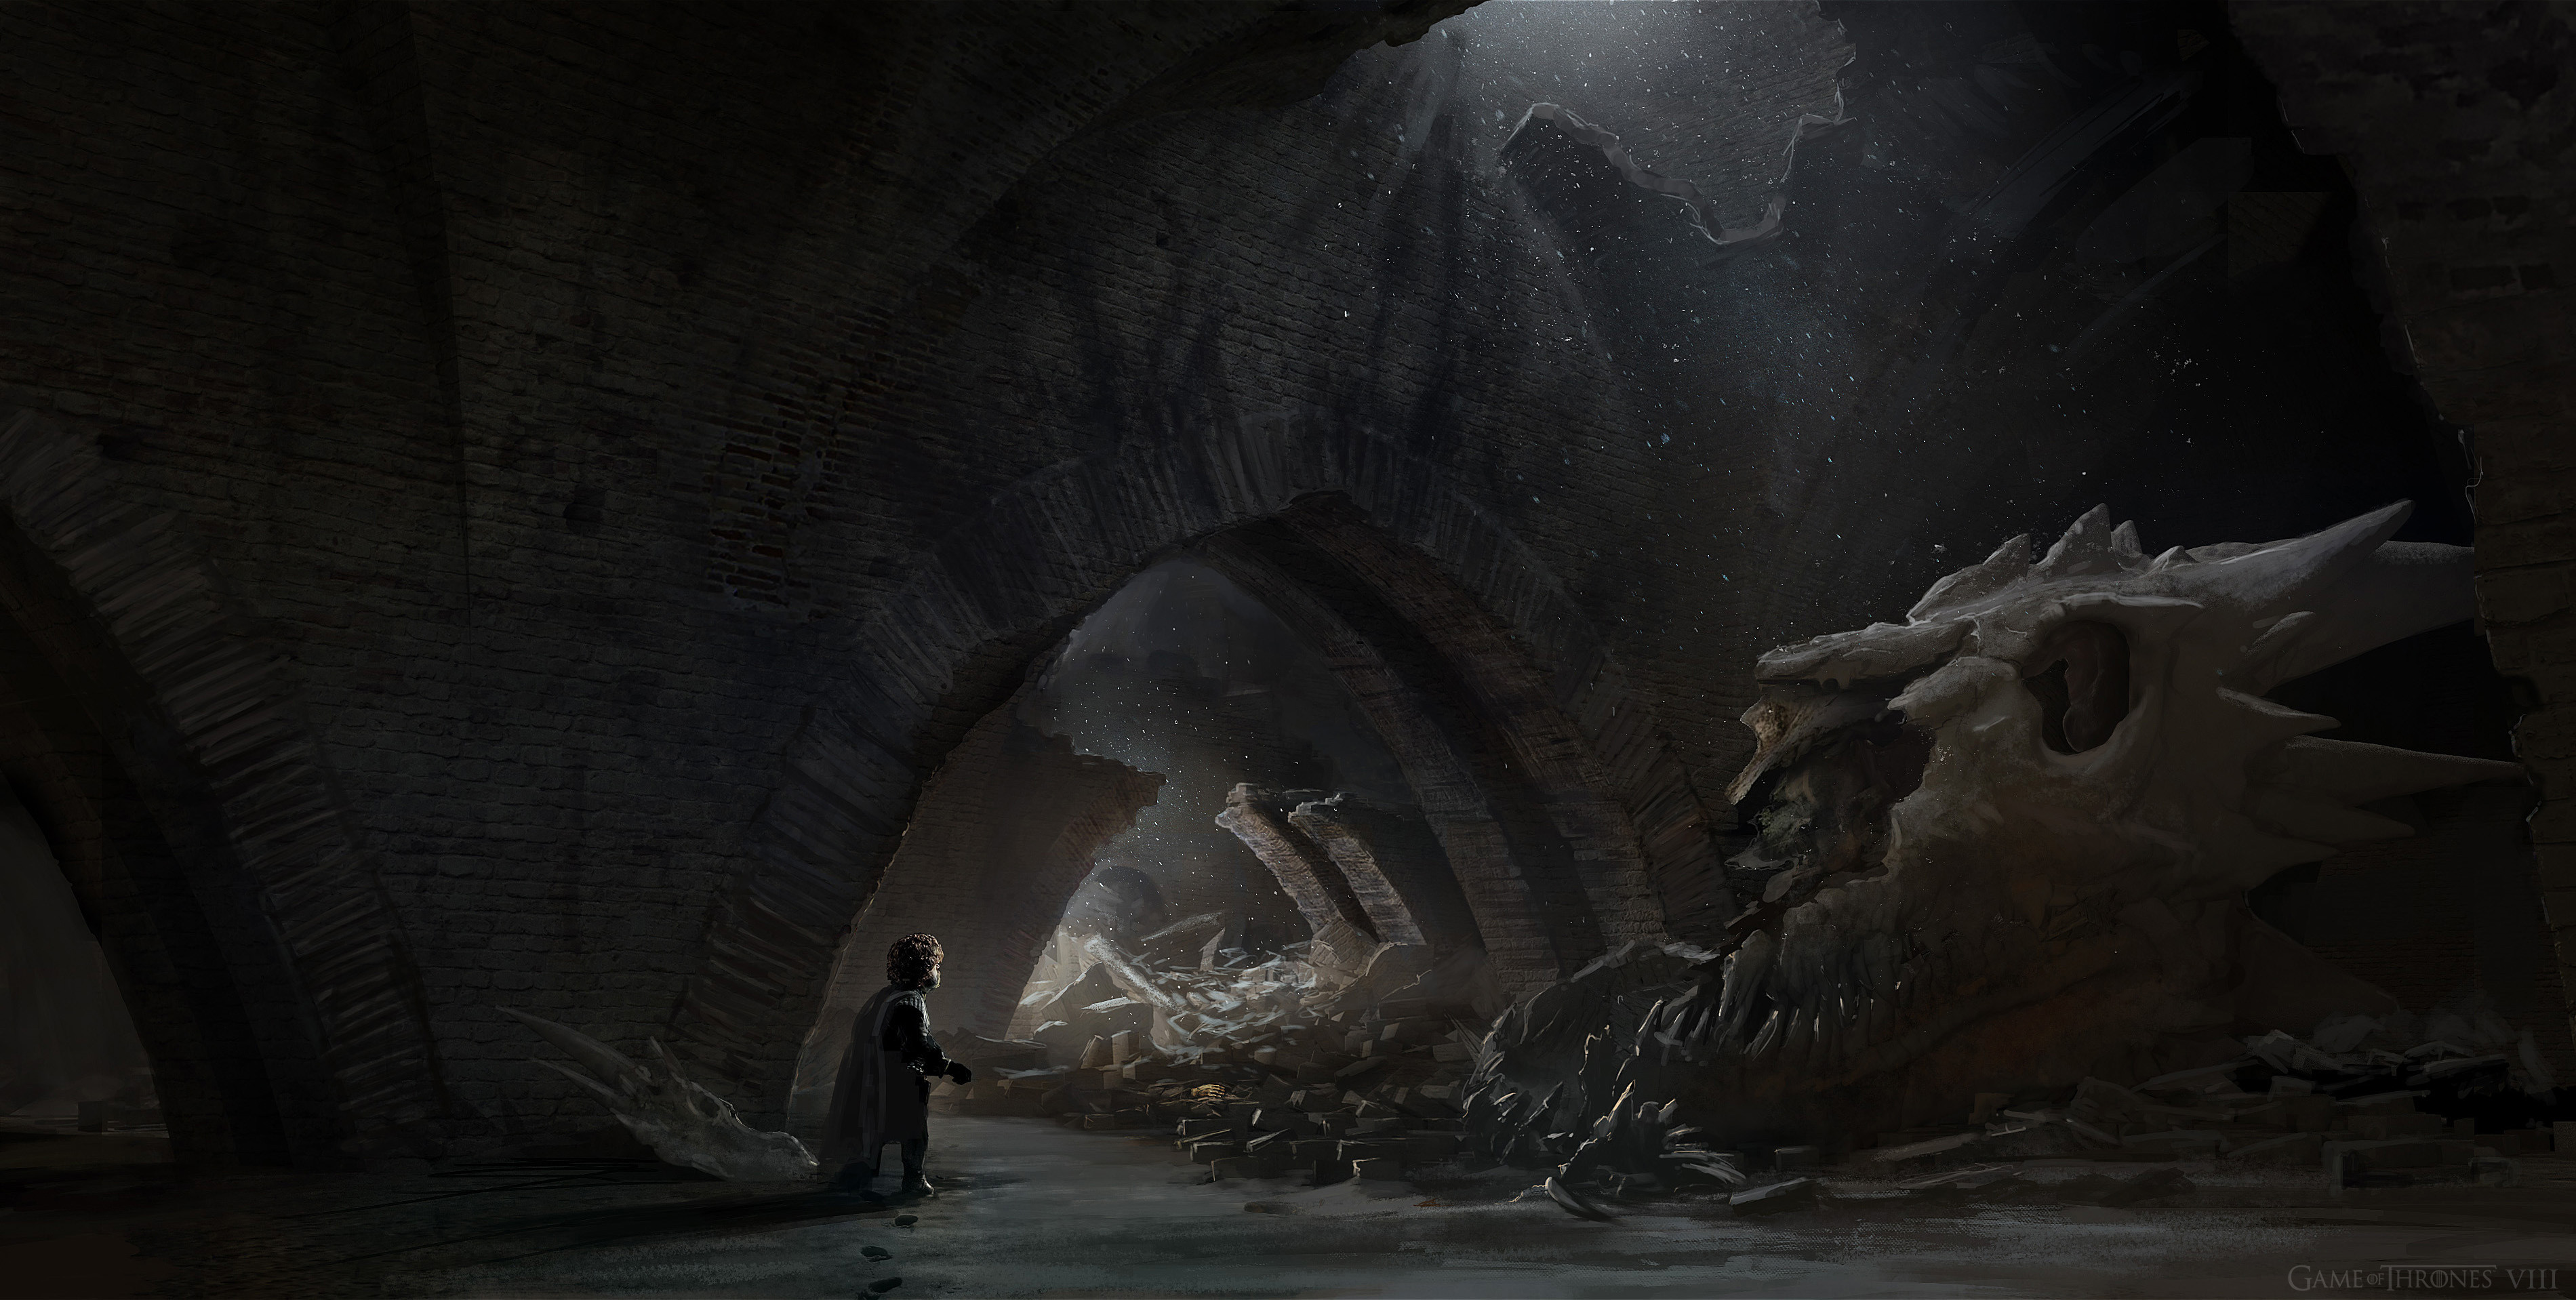 Tyrion reaches the Skull room and spots something in the rubble, final approved version